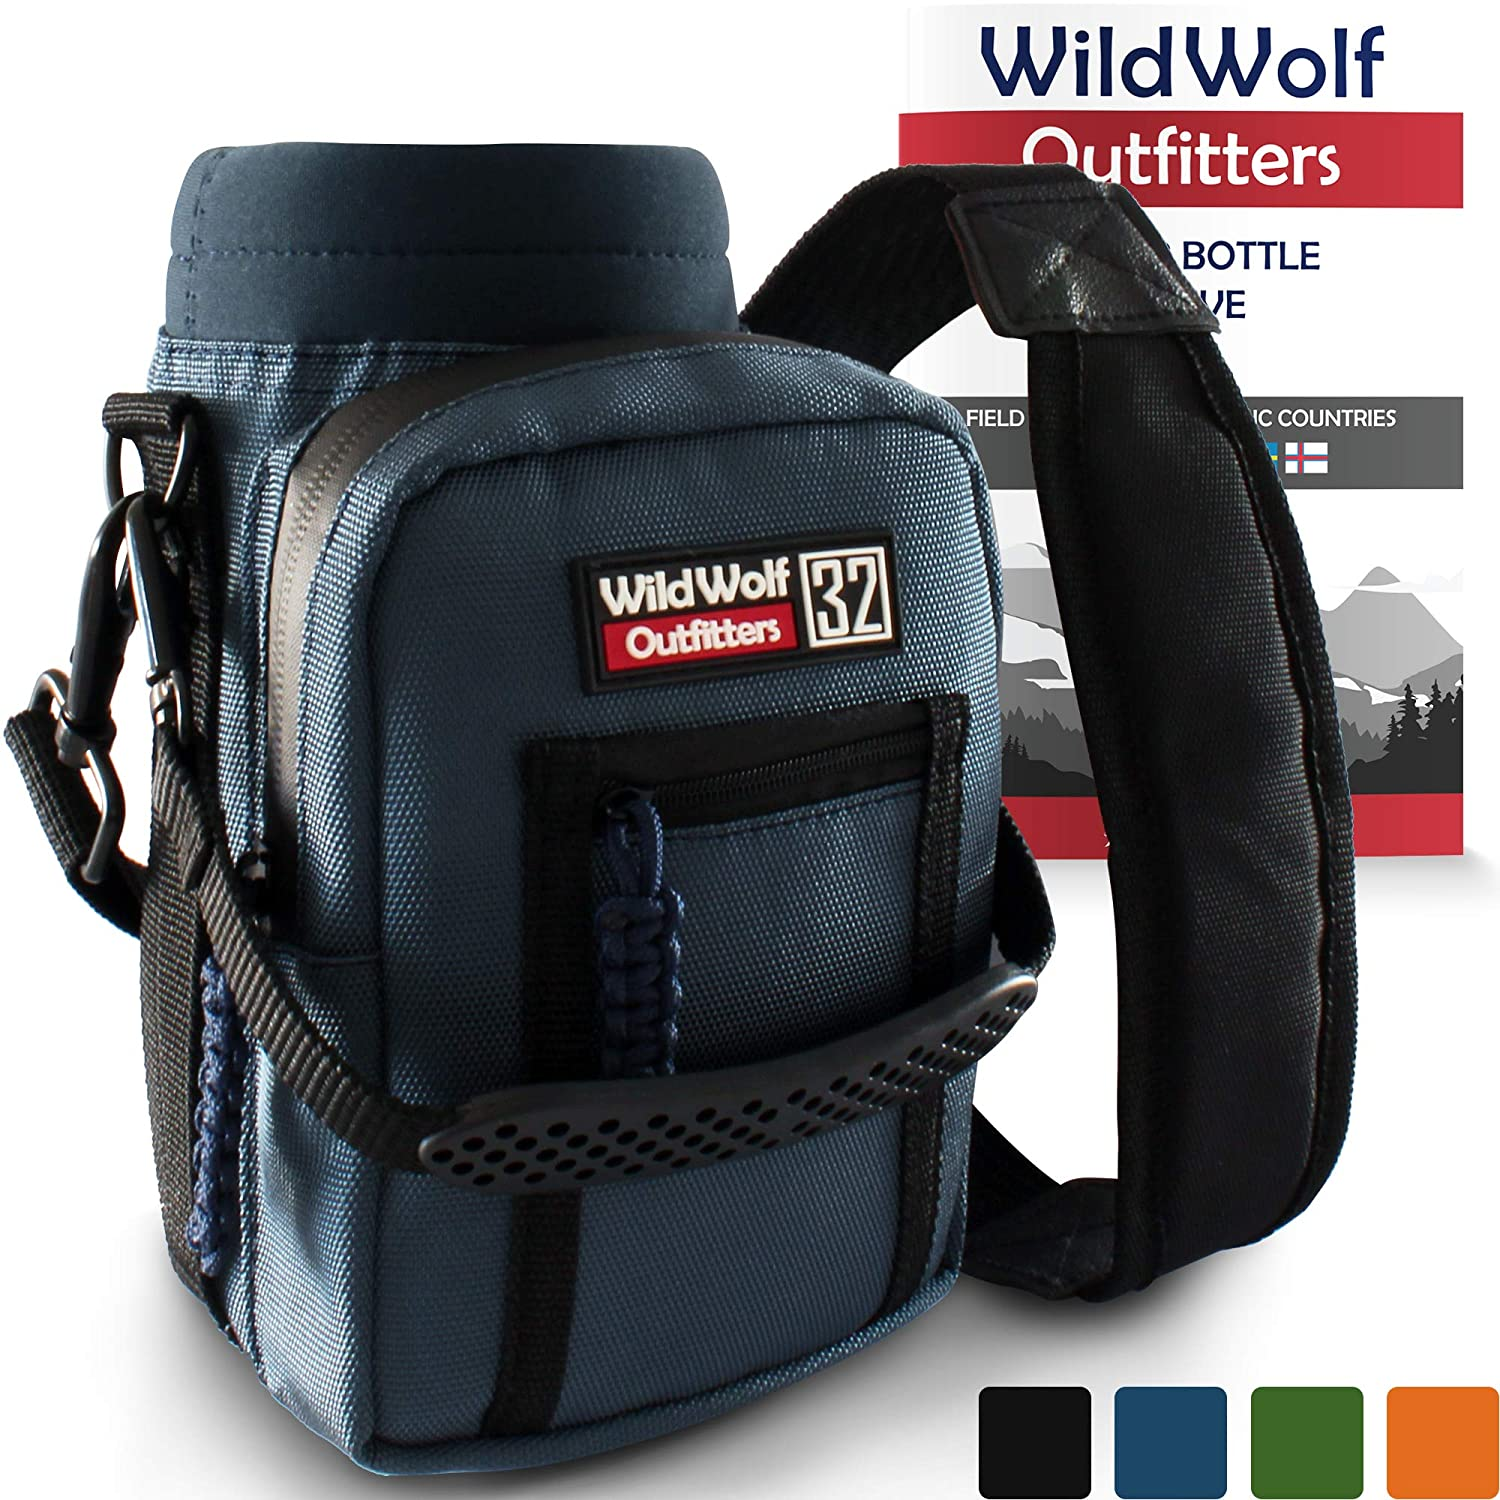 Wild Wolf Outfitters Water Bottle Holder for 32oz Bottles Blue - Carry, Protect and Insulate Your Best Flask with This Military Grade Carrier w/ 2 Pockets & an Adjustable Padded Shoulder Strap.